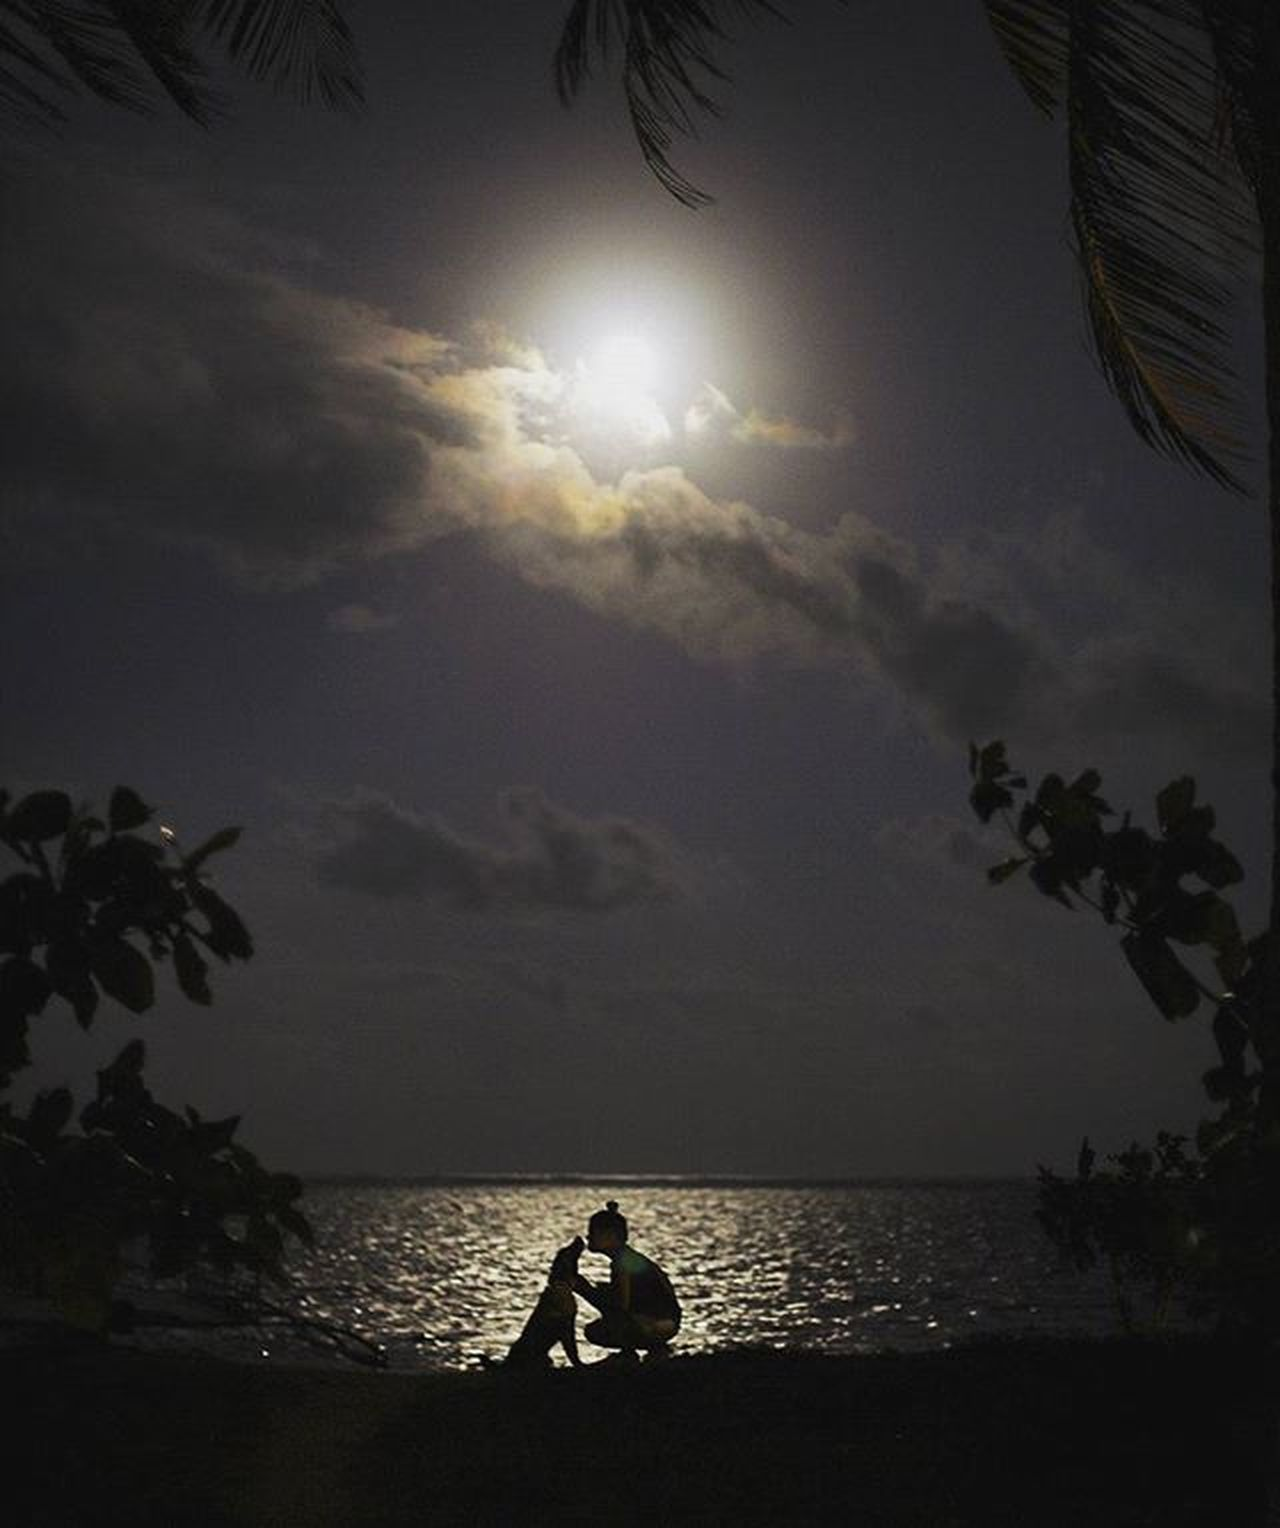 Almost full Moon in Paradise with Wonderful Models , what else can I ask for? Thanks Dom and Chetos! Photooftheday Picoftheday Wanderlust Instagood Instatravel Travel Explore Travelphotography Itsmorefuninthephilippines Pinoy ASIA Paradise Siargao Fullmoon Reflection Awesome Tourism